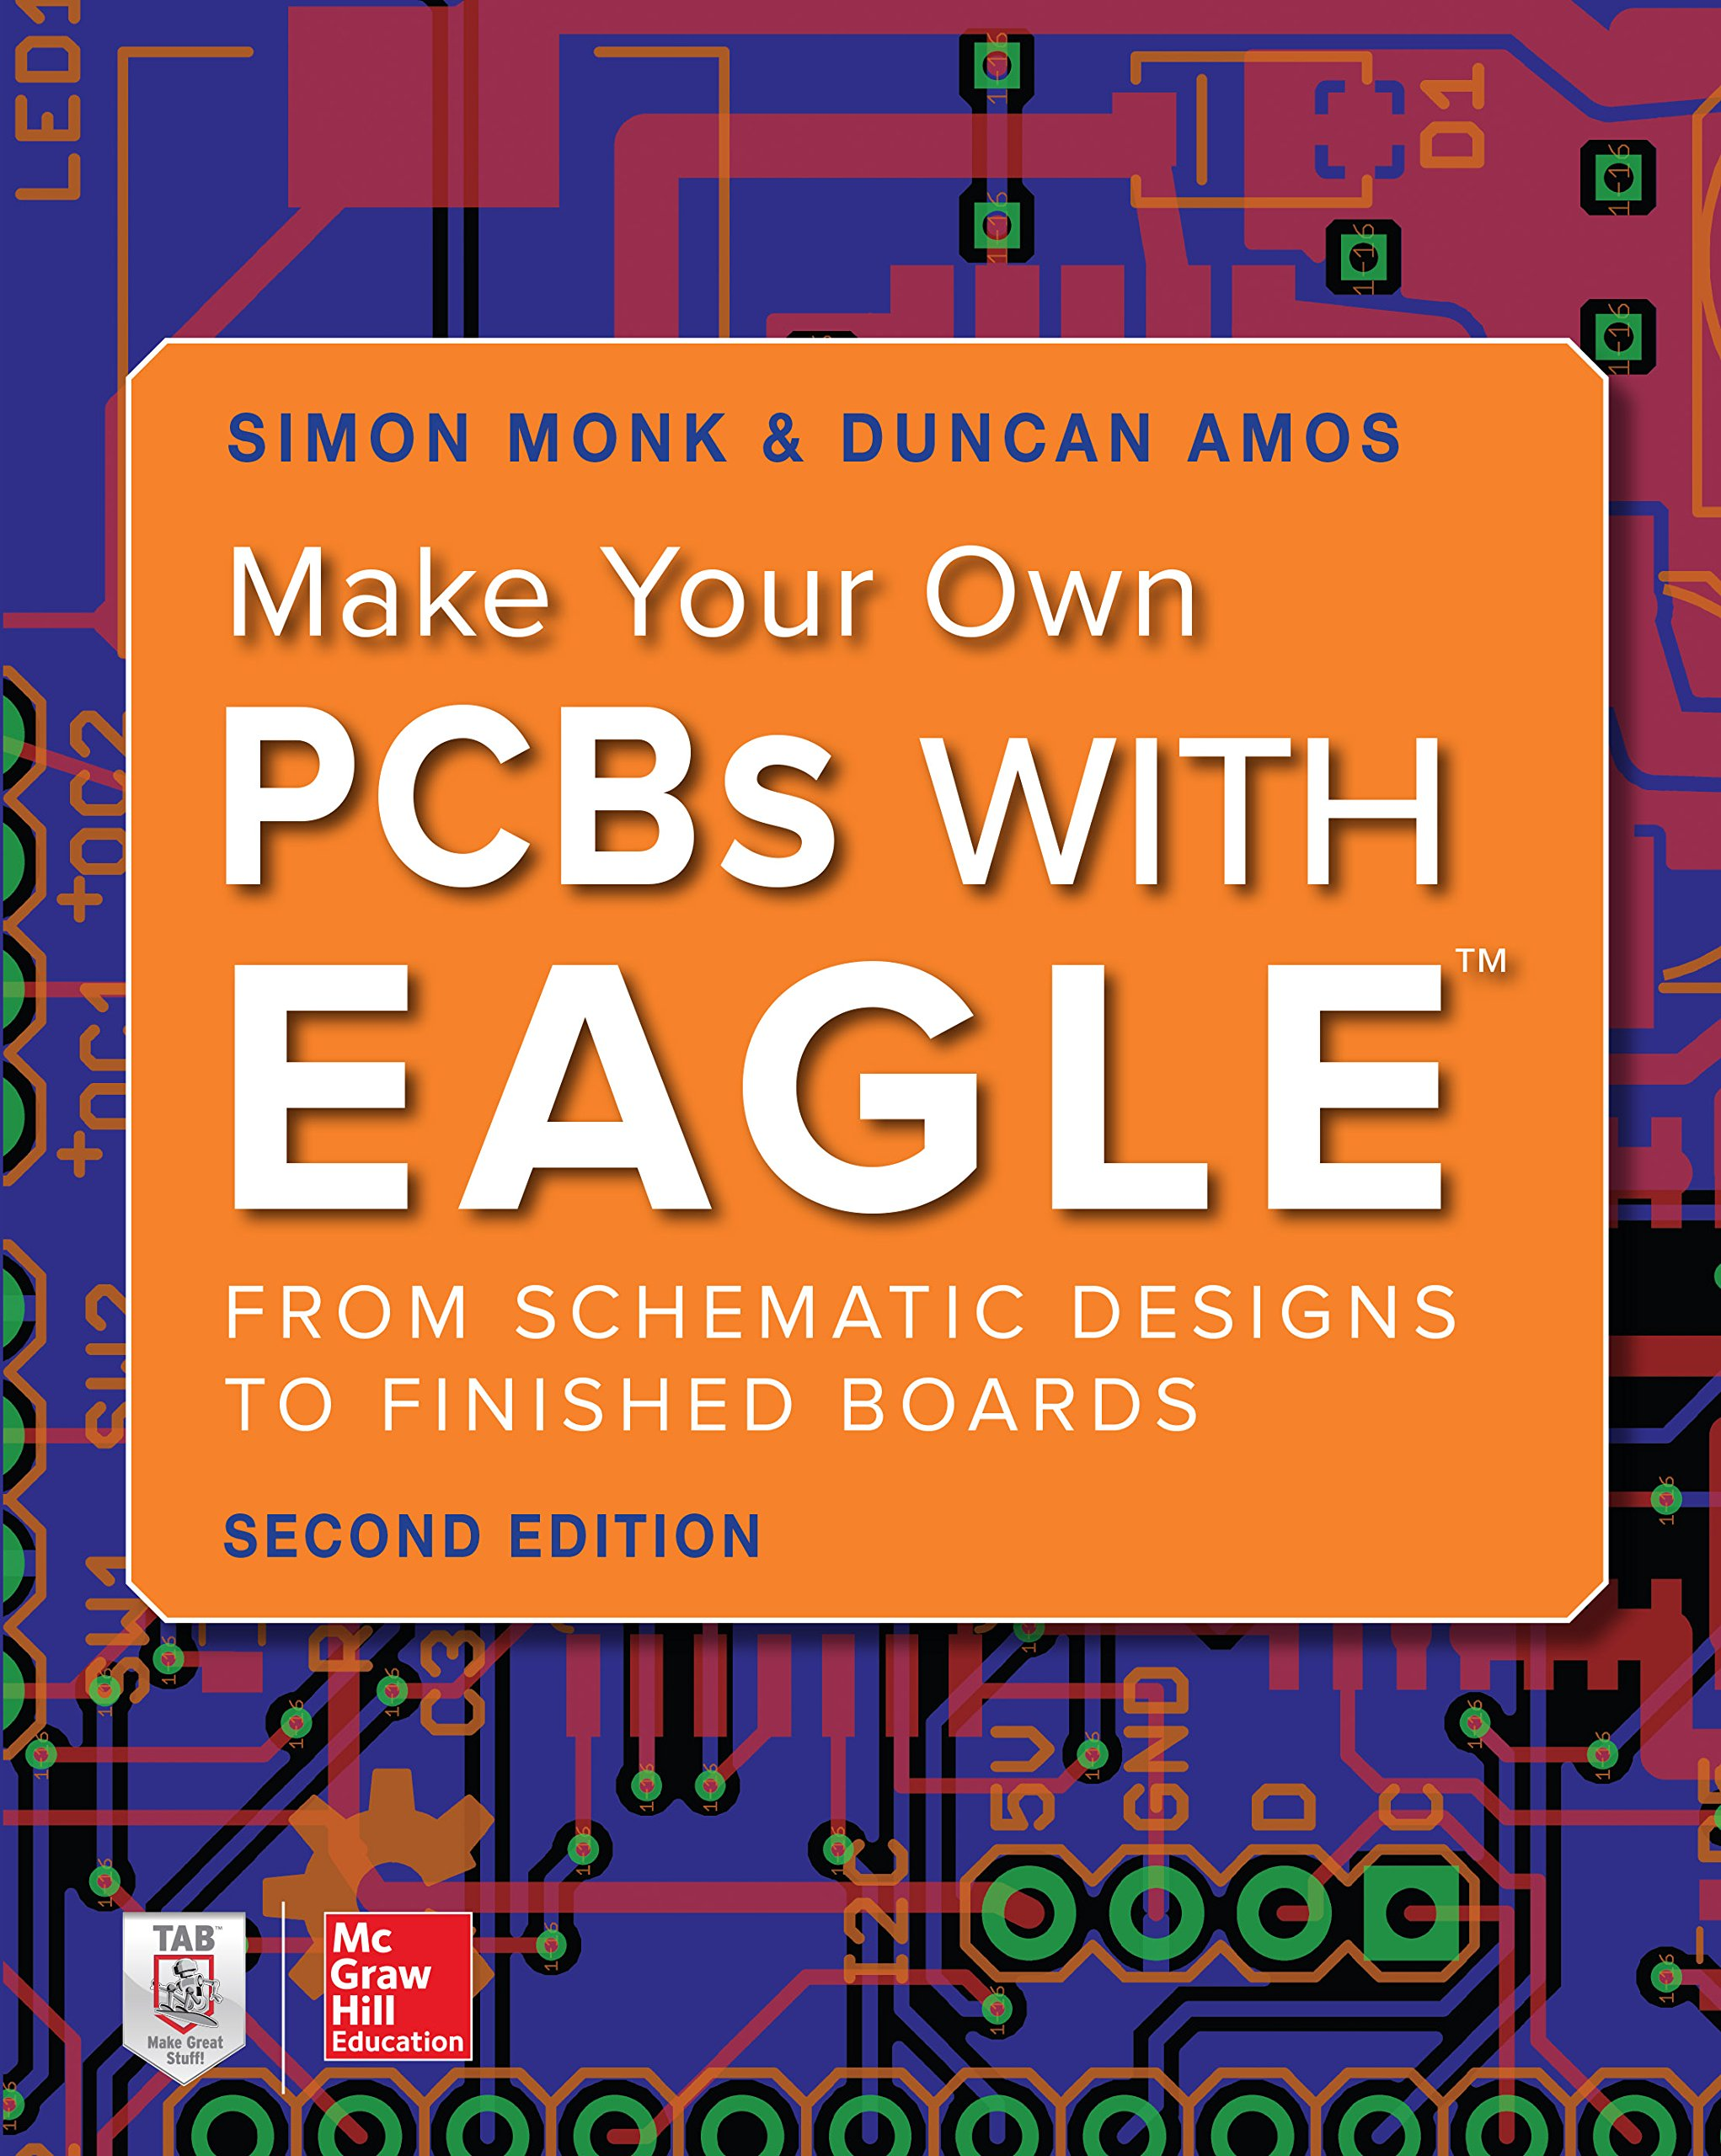 Make Your Own Pcbs With Eagle From Schematic Designs To Finished Boards Monk Simon Amos Duncan Ebook Amazon Com